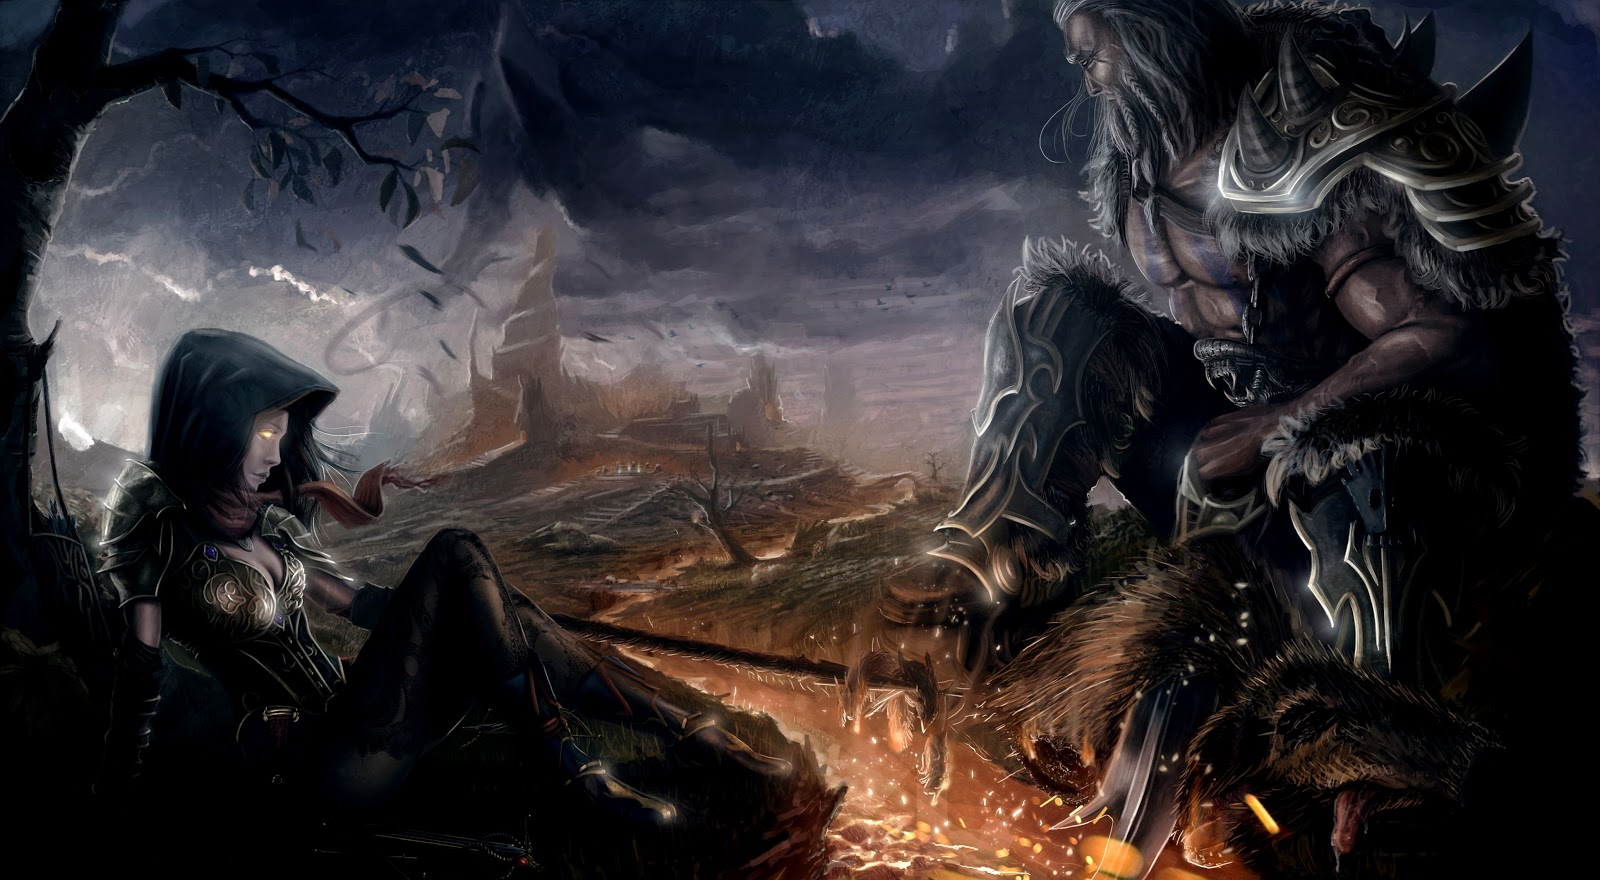 Diablo 3 The Demon Hunter Hd Wallpaper Ourlovemysoulmate